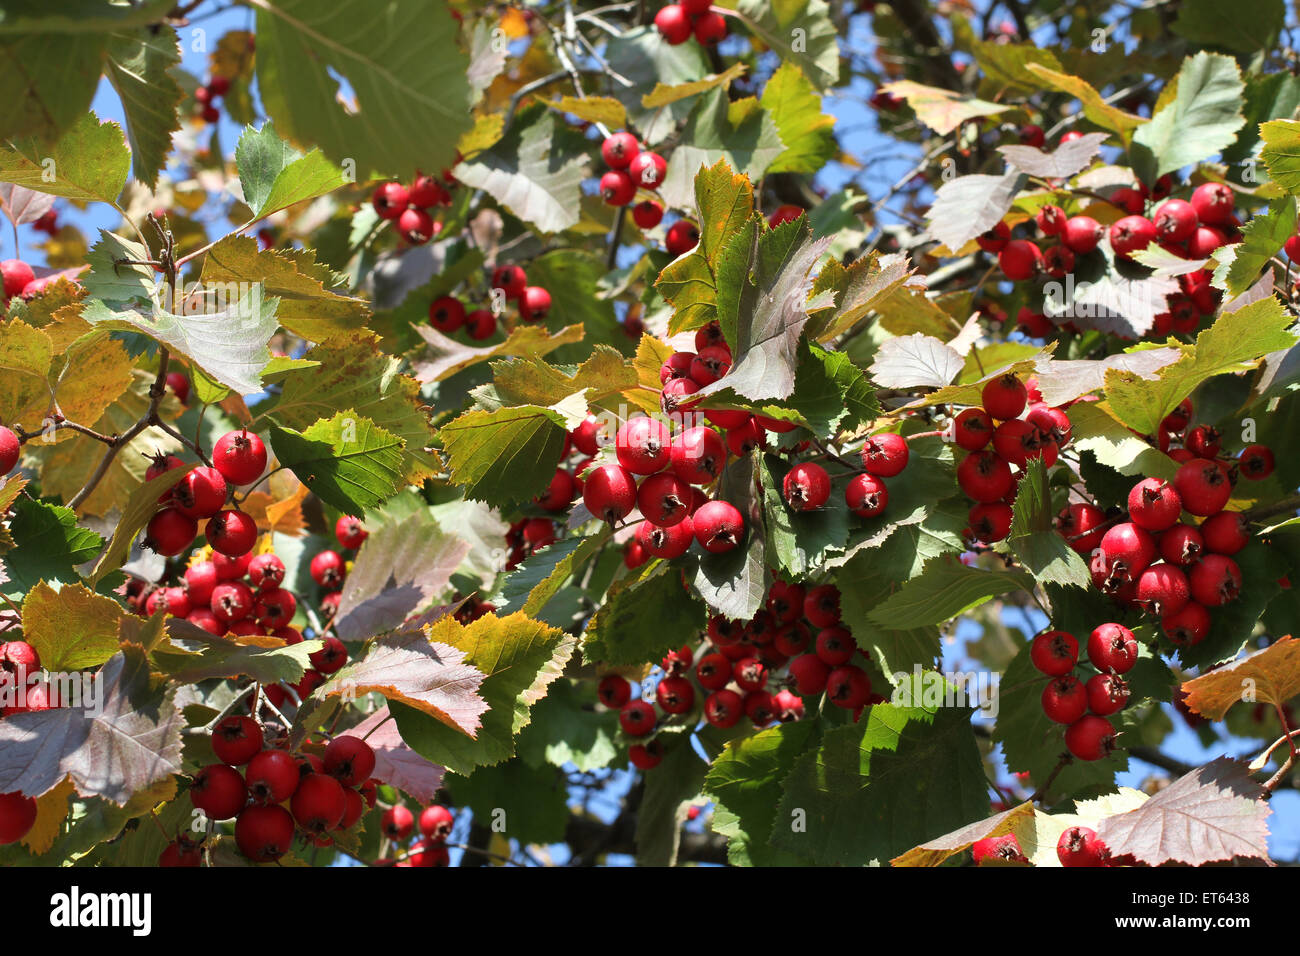 herbst rote beeren auf irga shadberry baum stockfoto bild 83728156 alamy. Black Bedroom Furniture Sets. Home Design Ideas